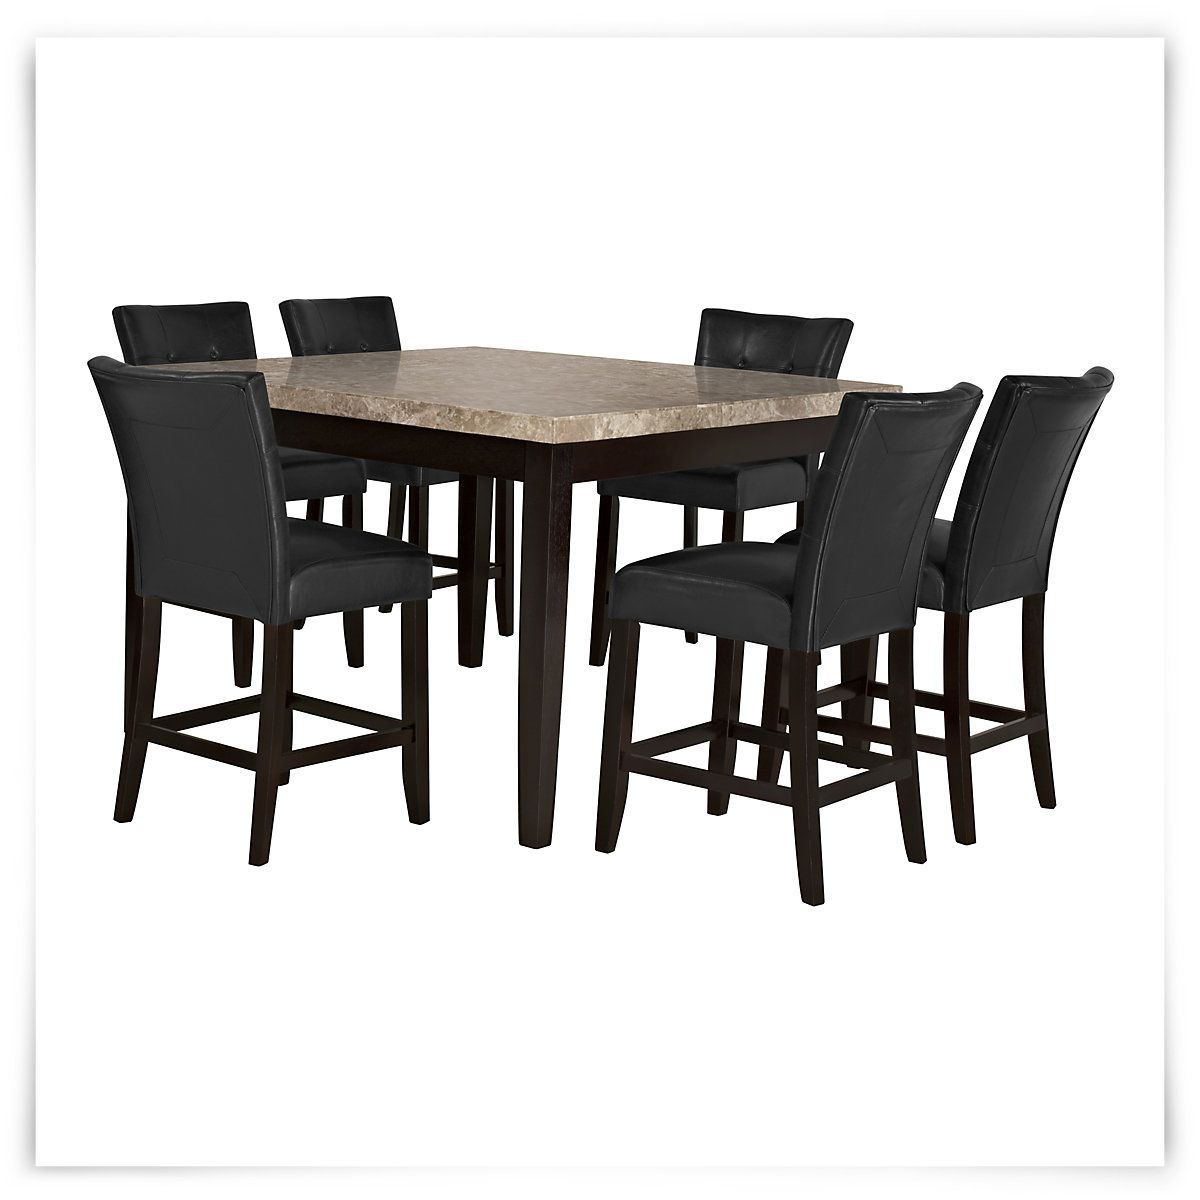 Monark Square Marble High Table 4 Upholstered Barstools High Dining Table Dining Table Marble Marble Dining Table Set